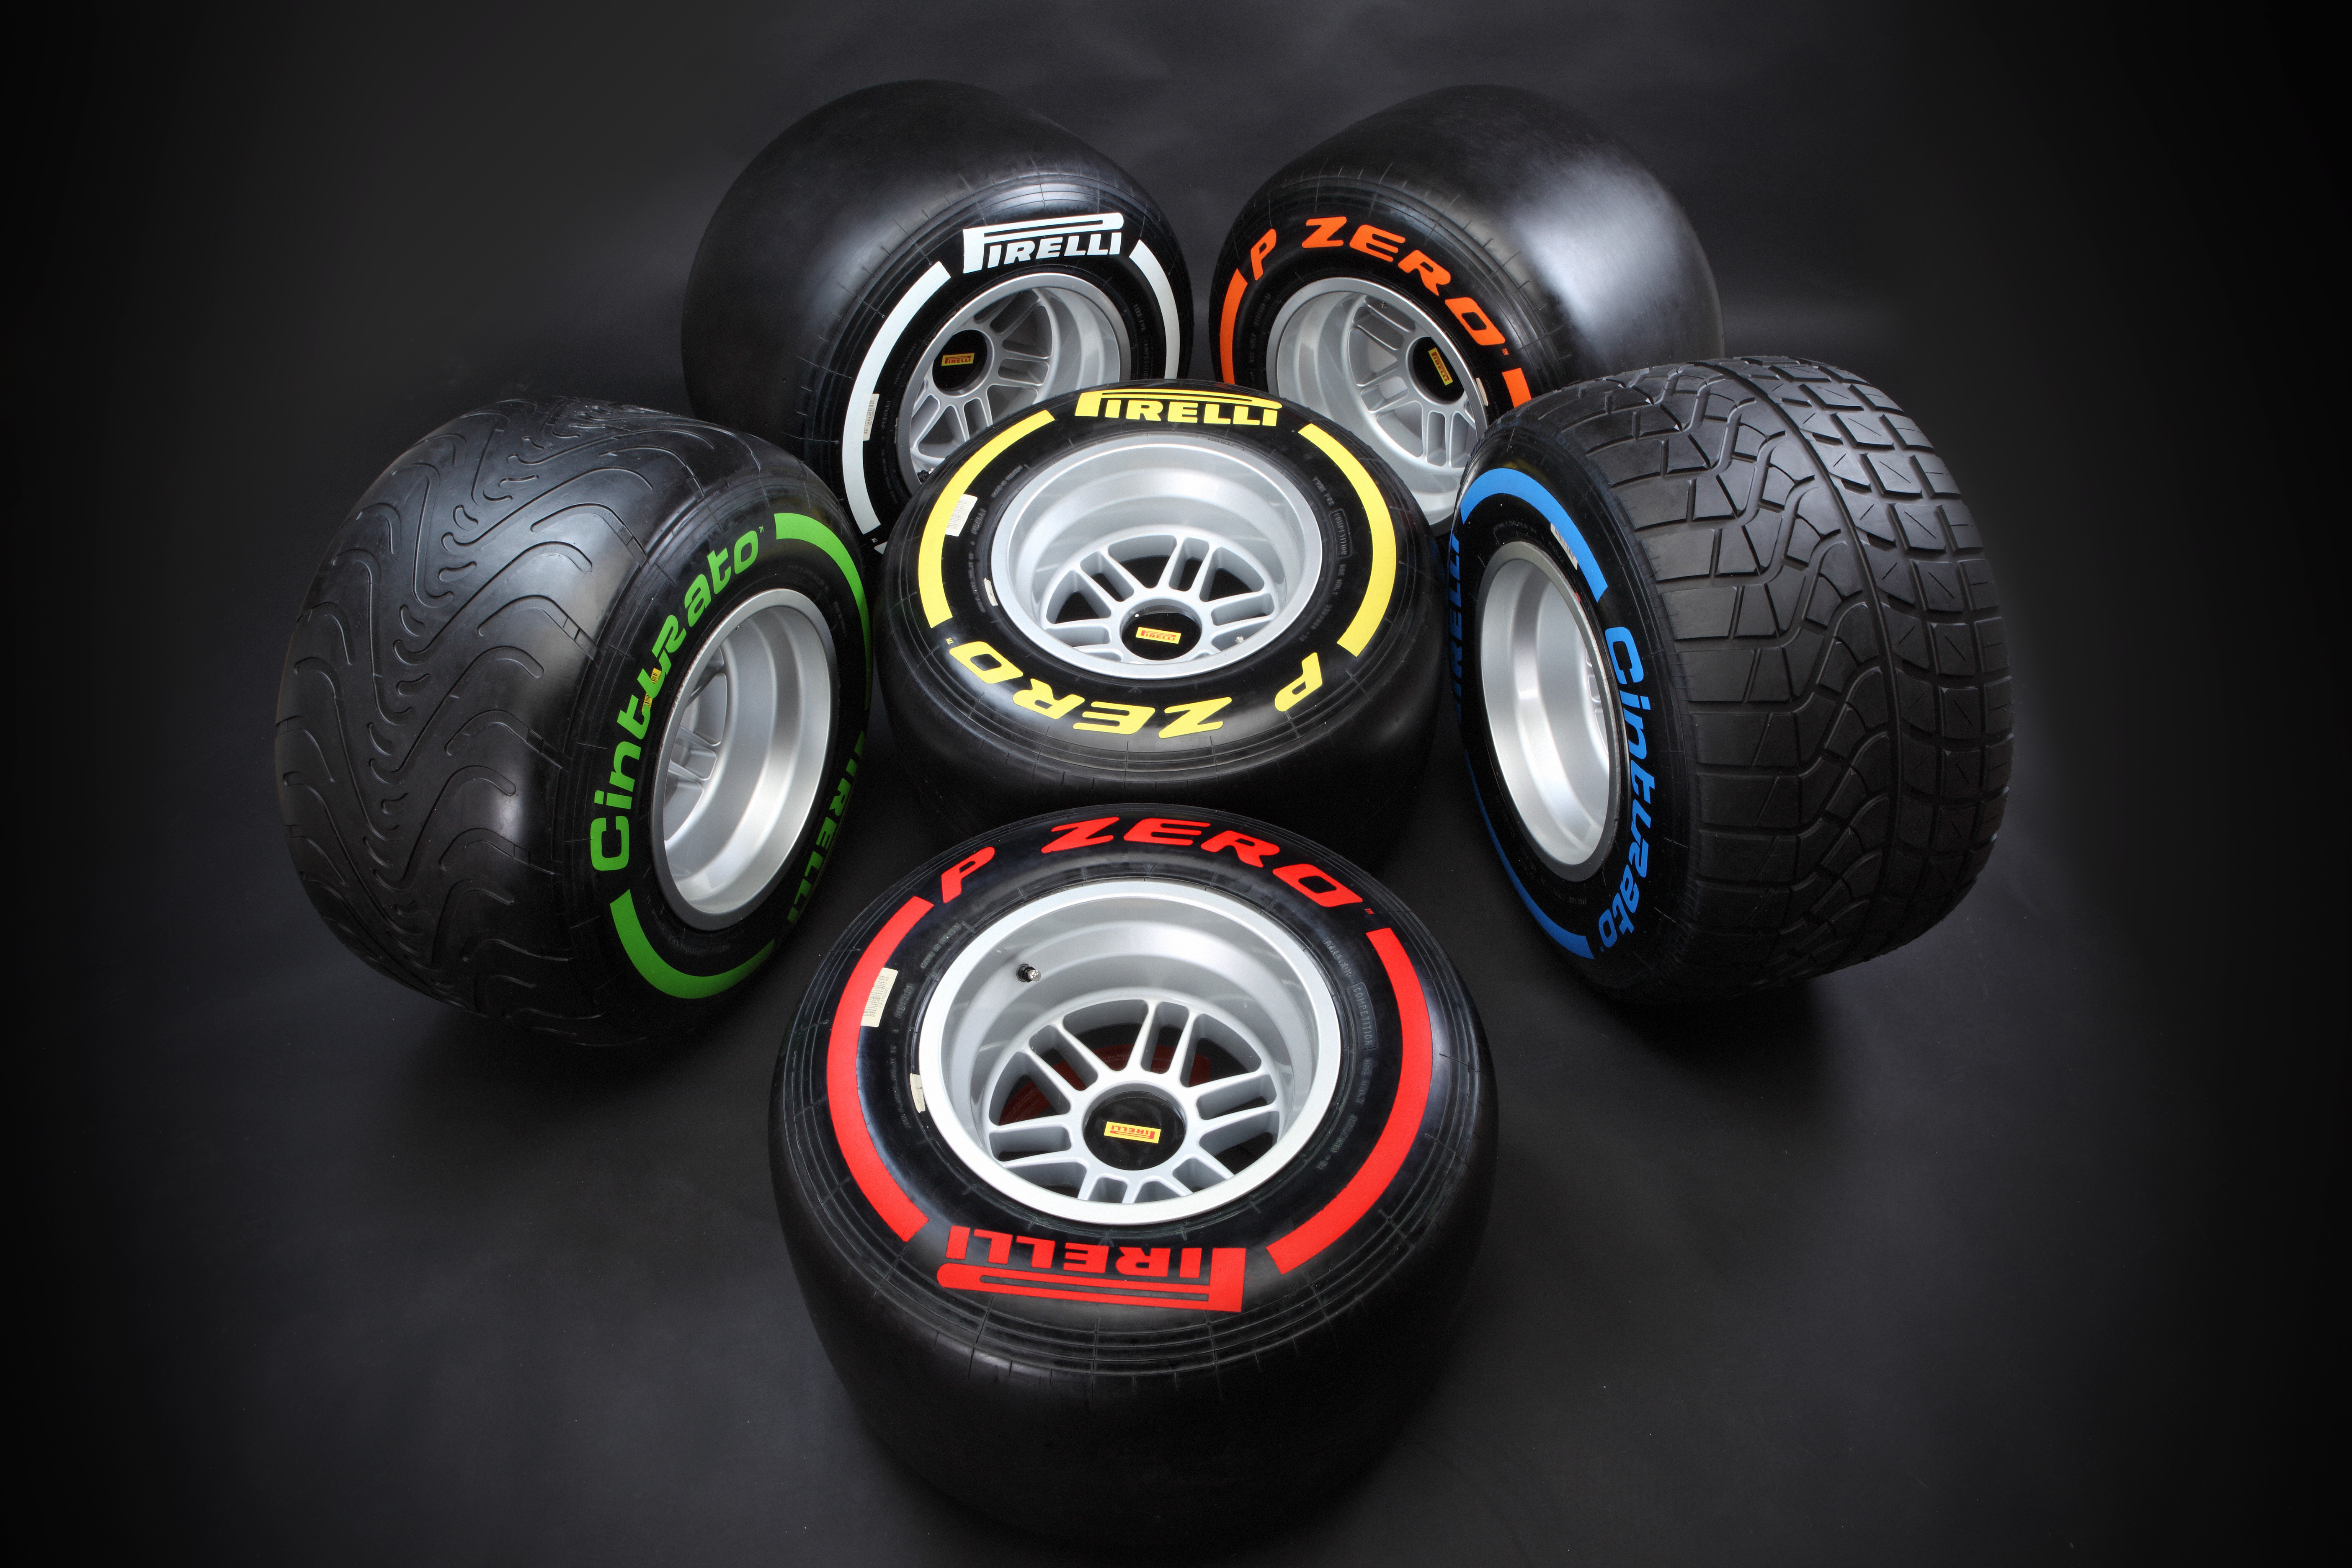 Pirelli tire nominations revealed for Korea, Japan and India